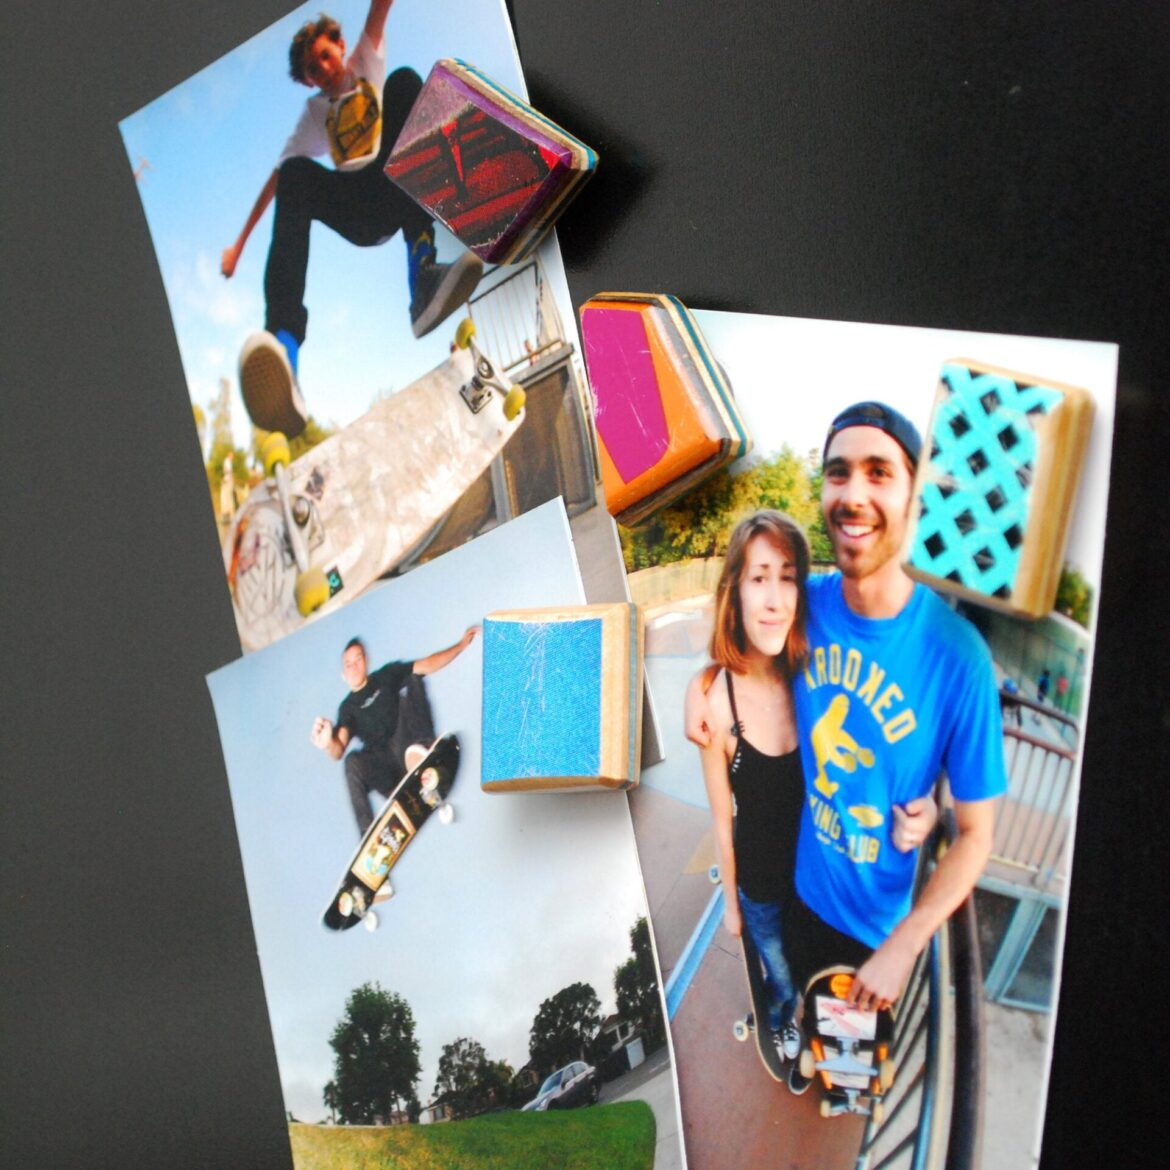 recycled skate deck, magnet